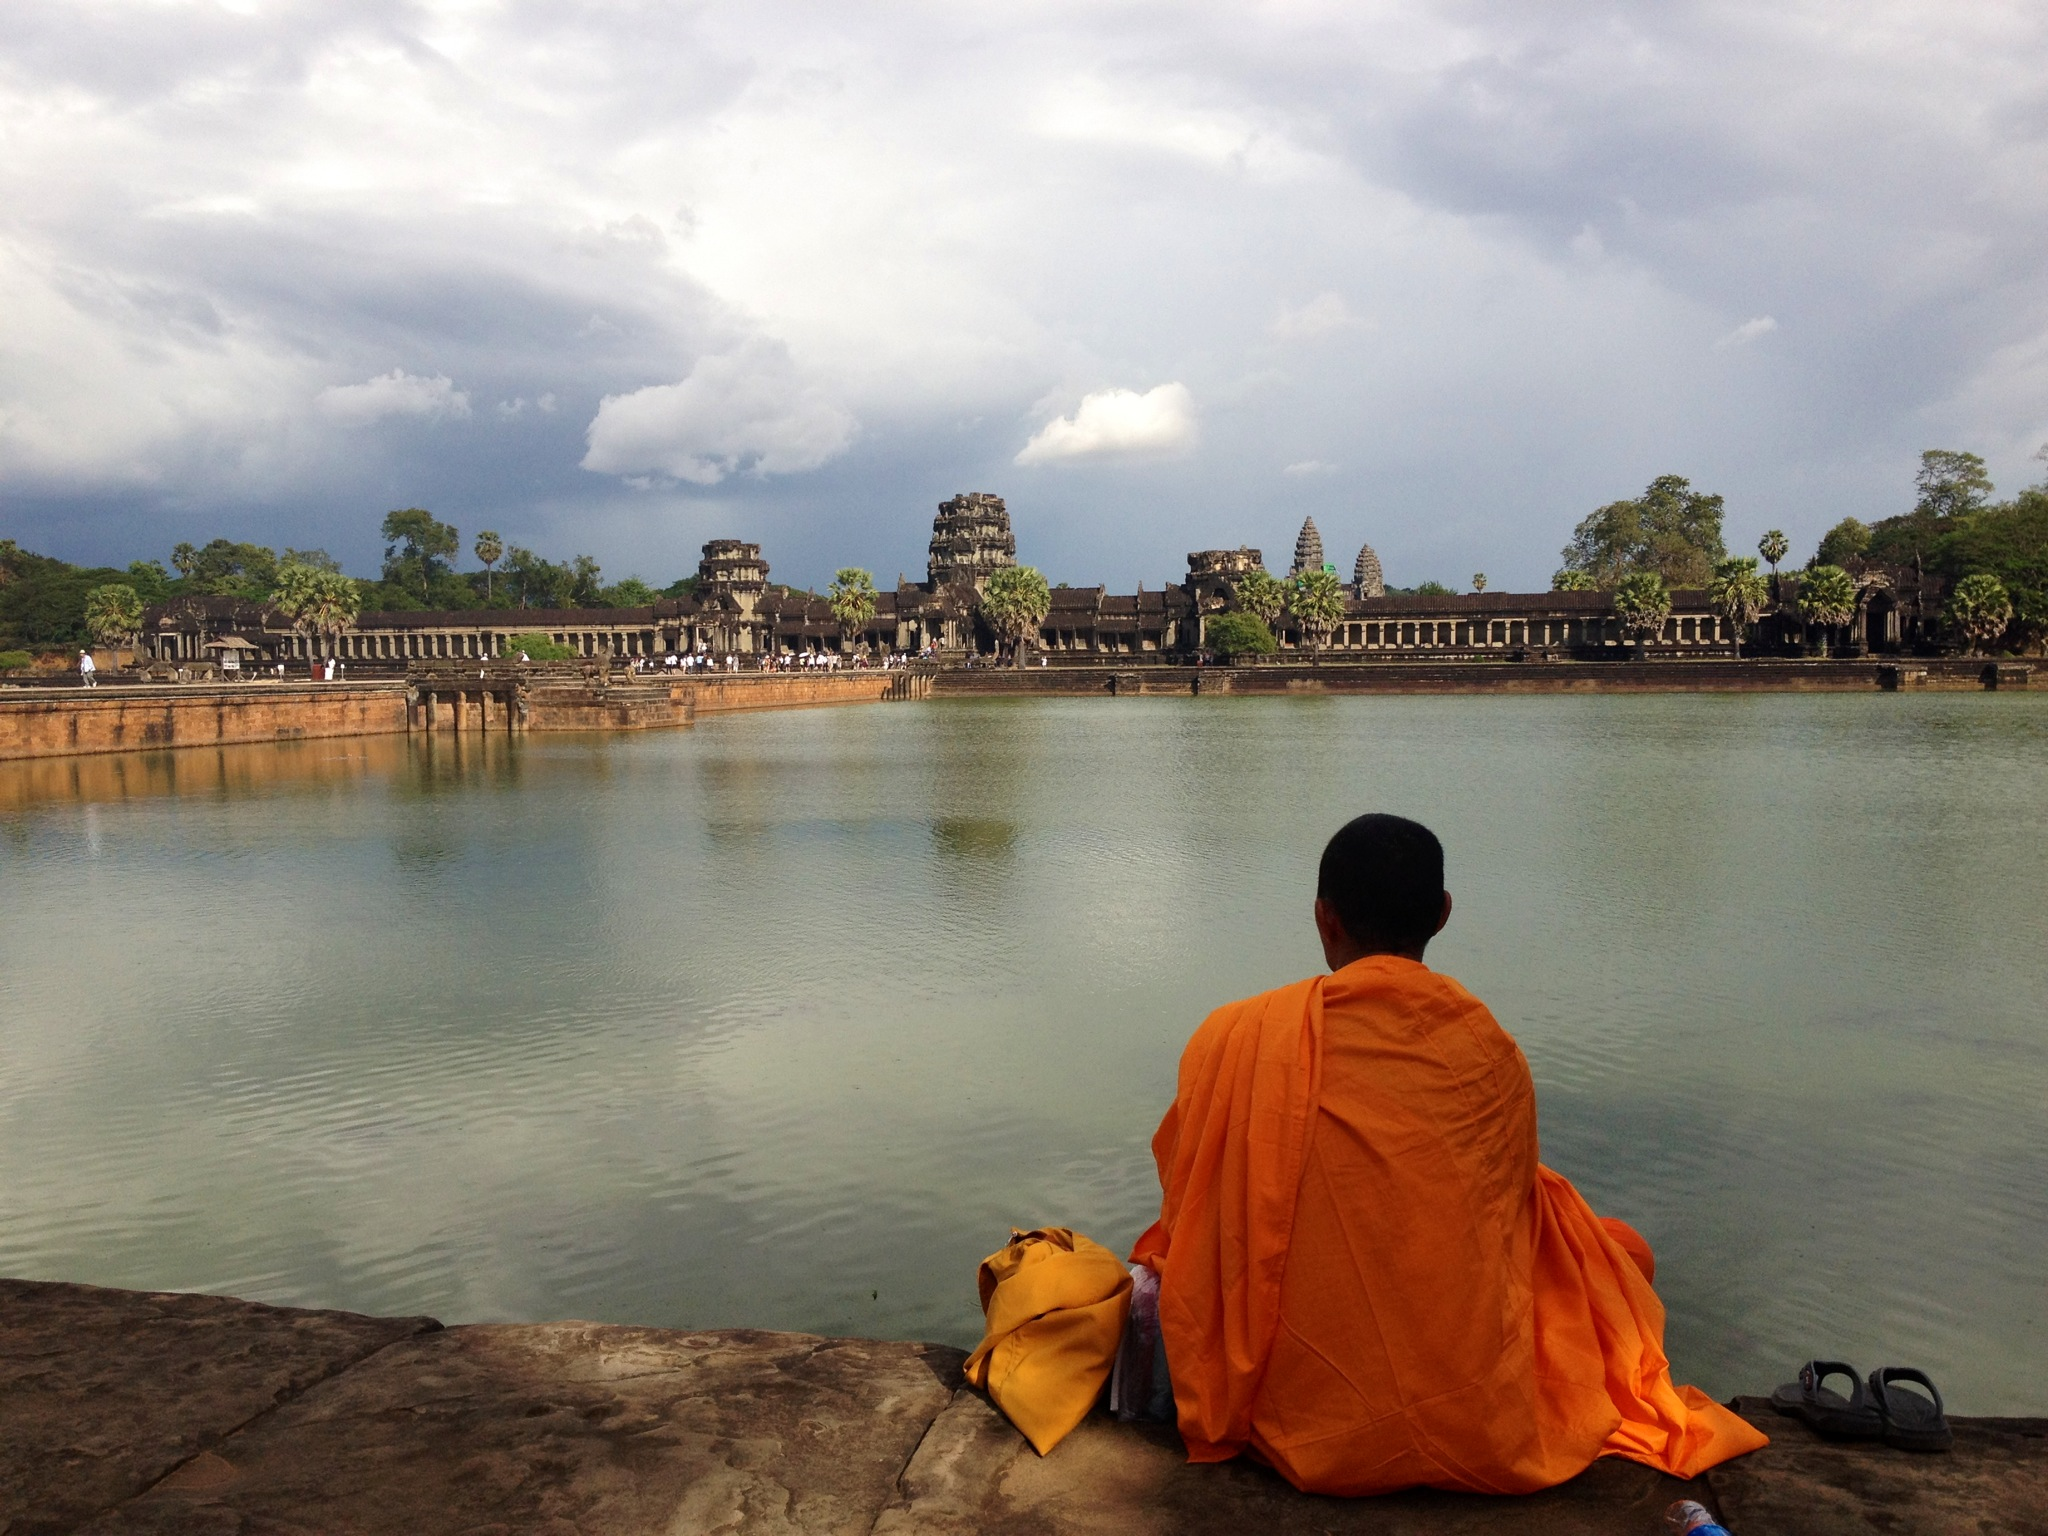 Zoom Vietnam & Cambodia - Few countries in the world offer as much intrigue and surprise as Vietnam and Cambodia. While touring these destinations, one learns to expect the unexpected, and to simply be impressed at every turn. Zoom will show you the magic of these incredible countries.